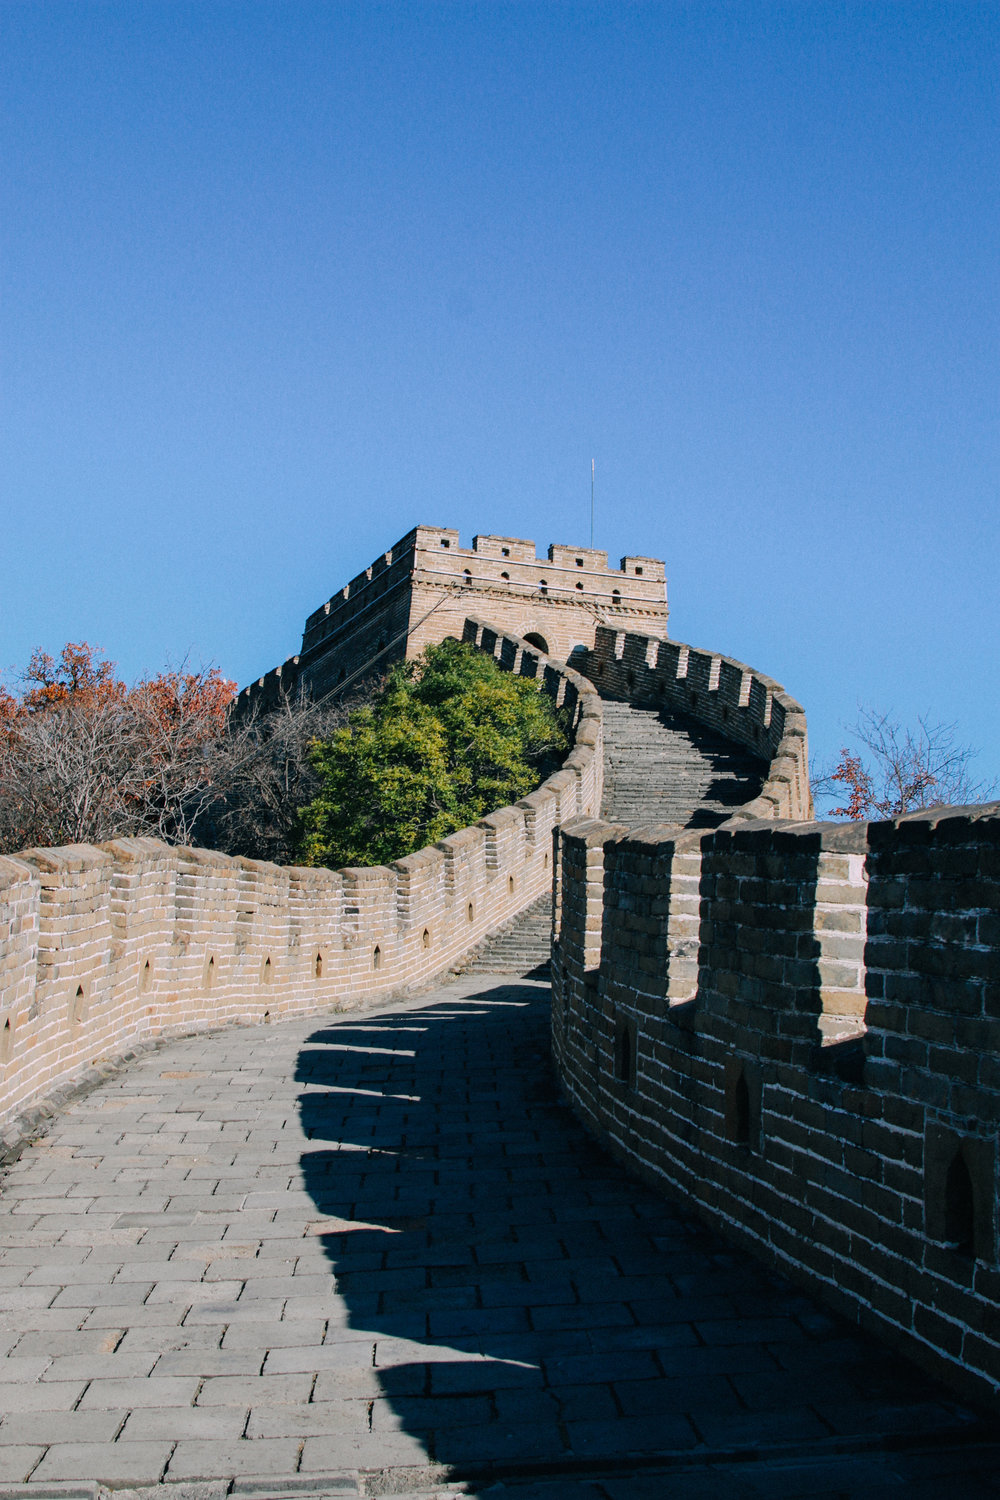 GreatWall-47.jpg